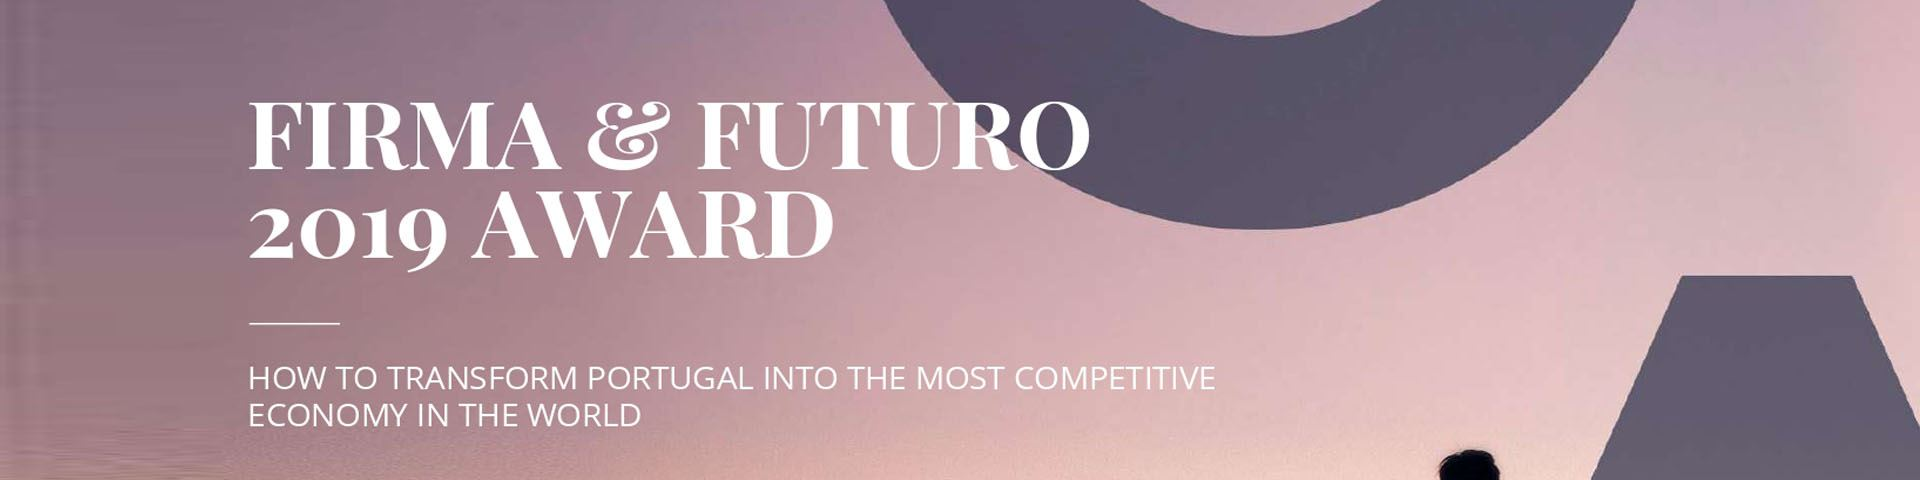 Applications for the Firma & Futuro 2019 Award Are Officially Open